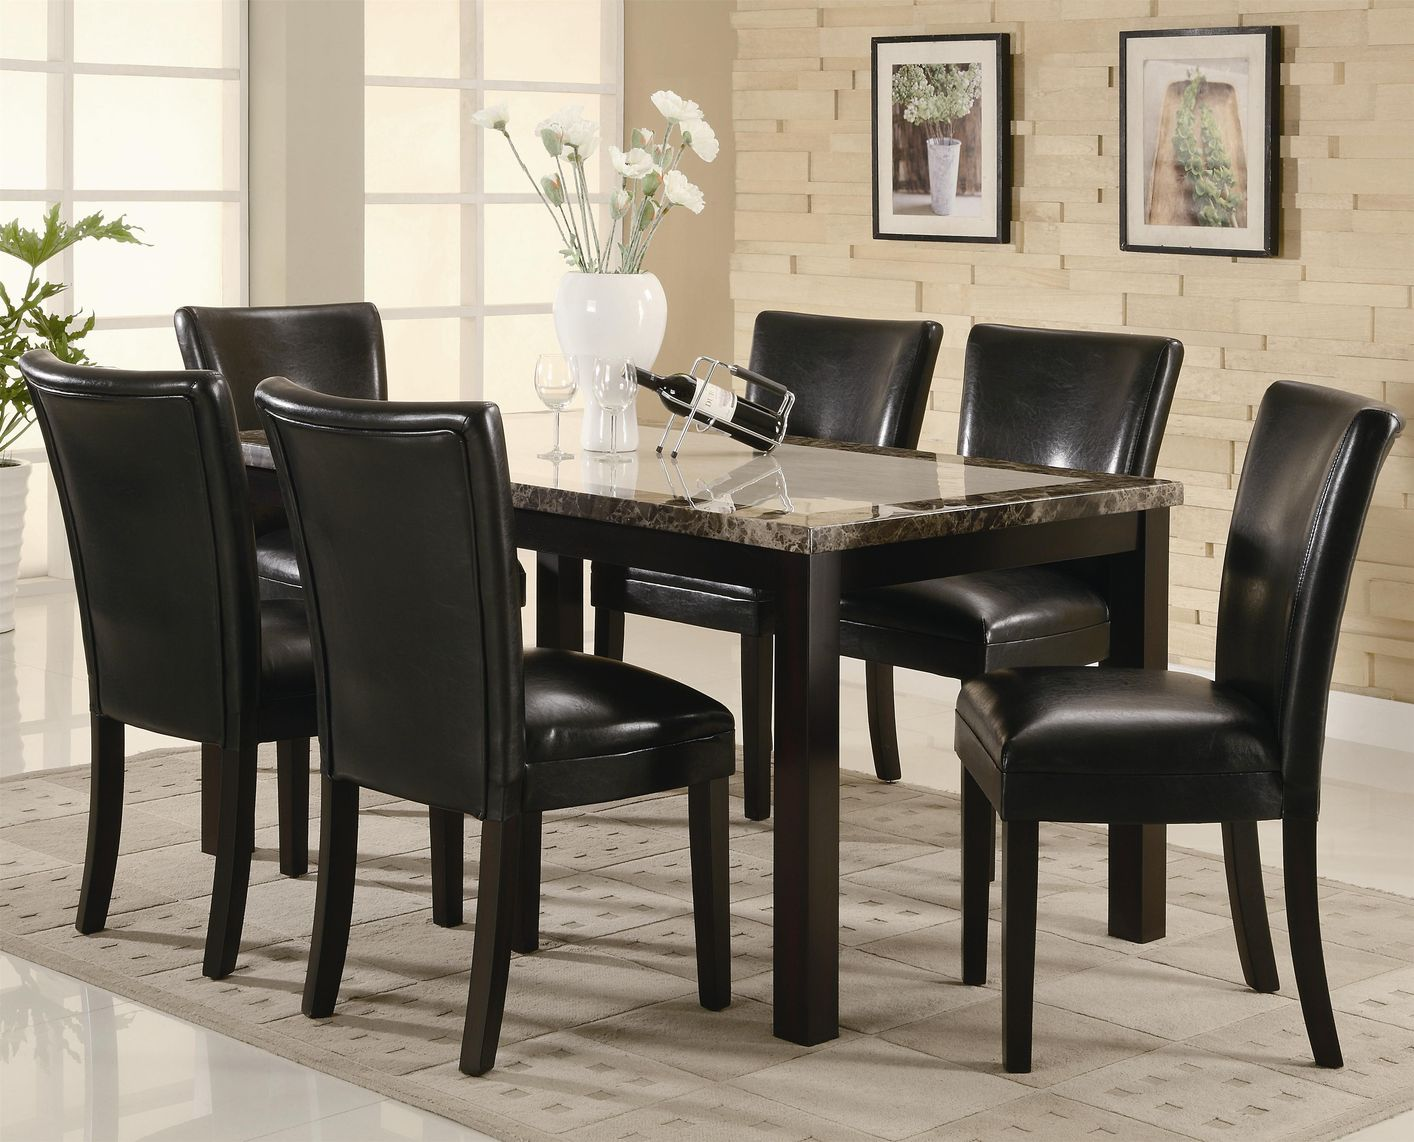 Dining Sets with Chairs Kitchen   Prime Classic Design